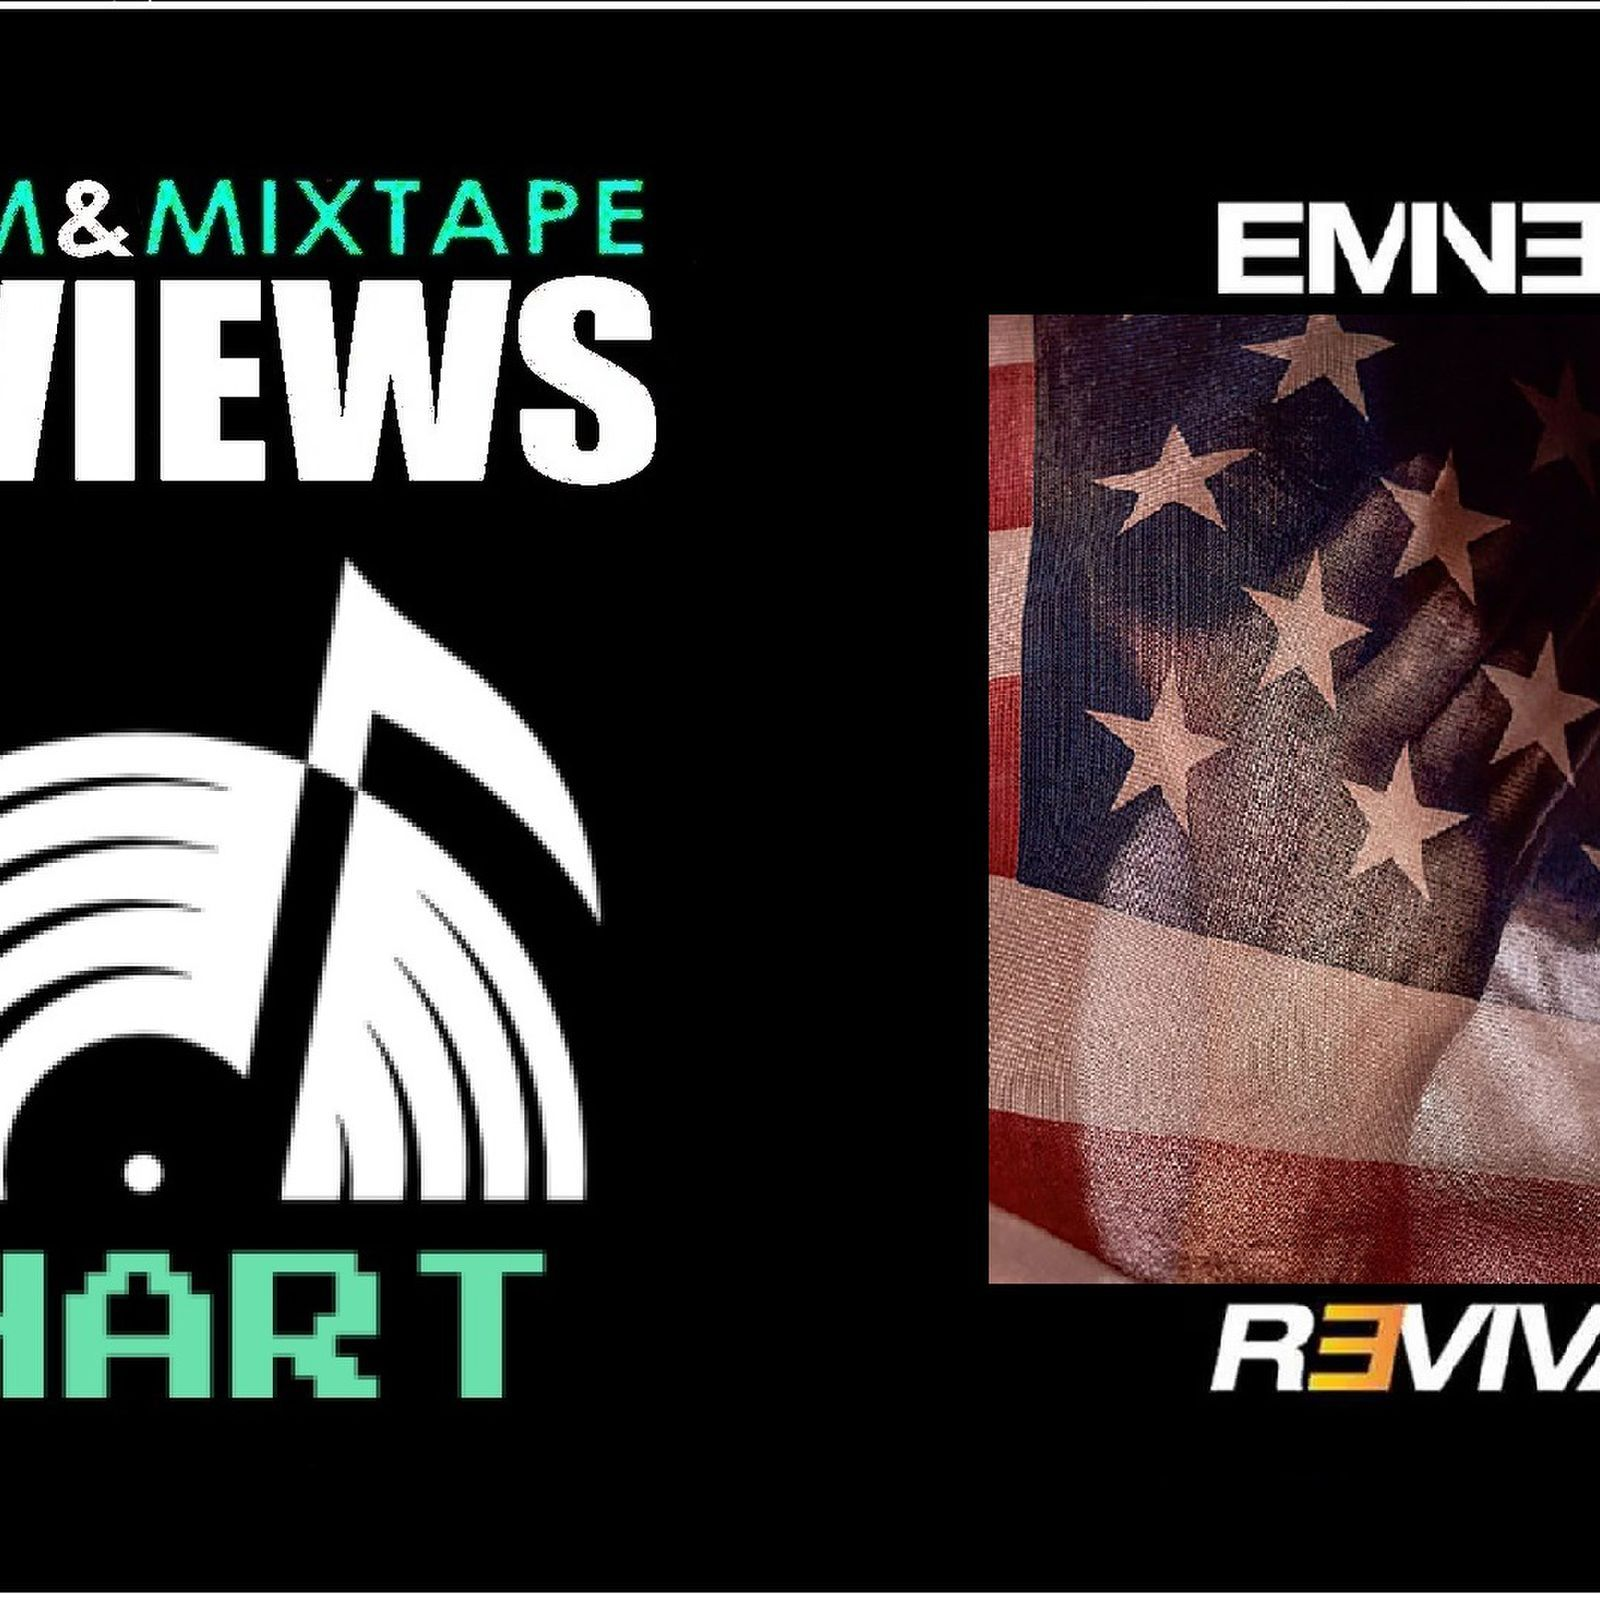 Eminem - Revival ALBUM REVIEW by The Review Team from Rap & Hip-Hop